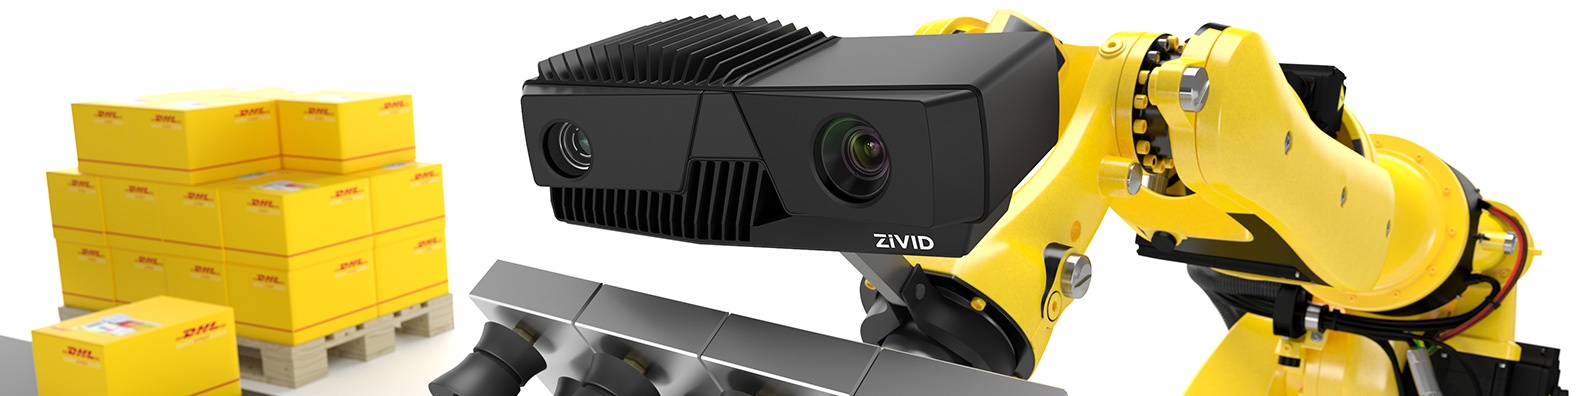 DHL using robot mounted Zivid camera